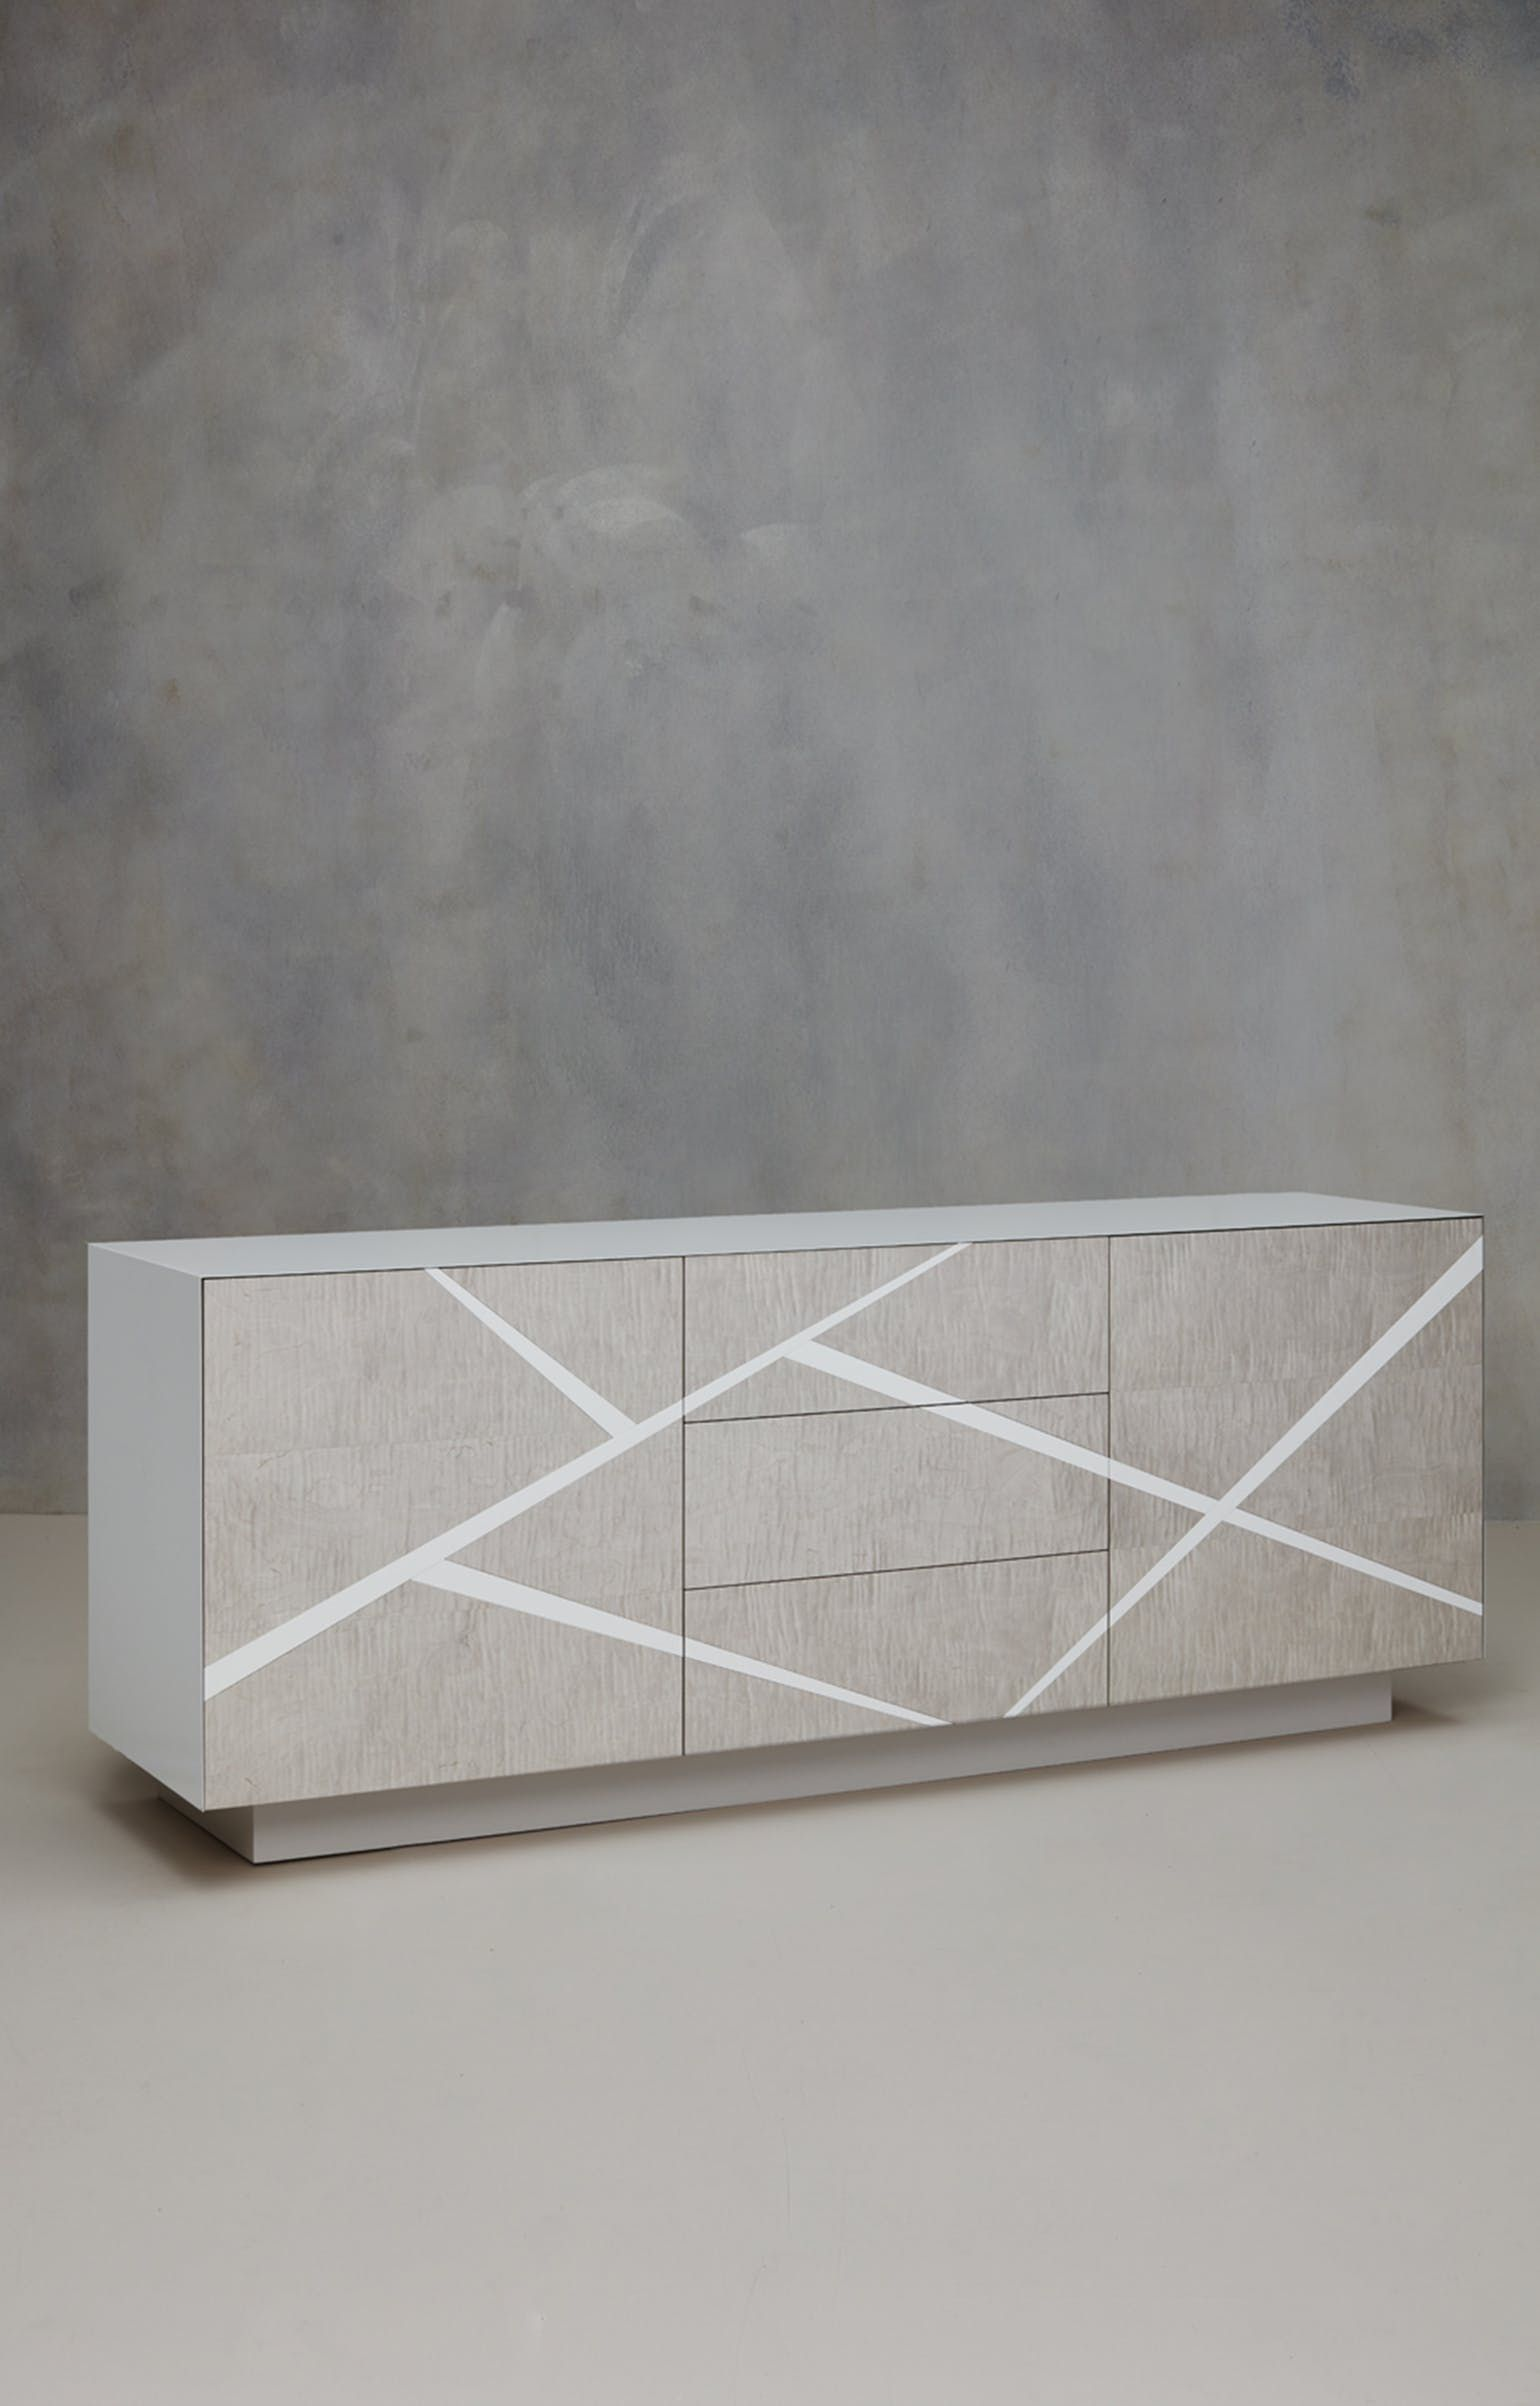 Buy Odessa Cabinet By Tom Faulkner   Made To Order Designer Furniture From  Dering